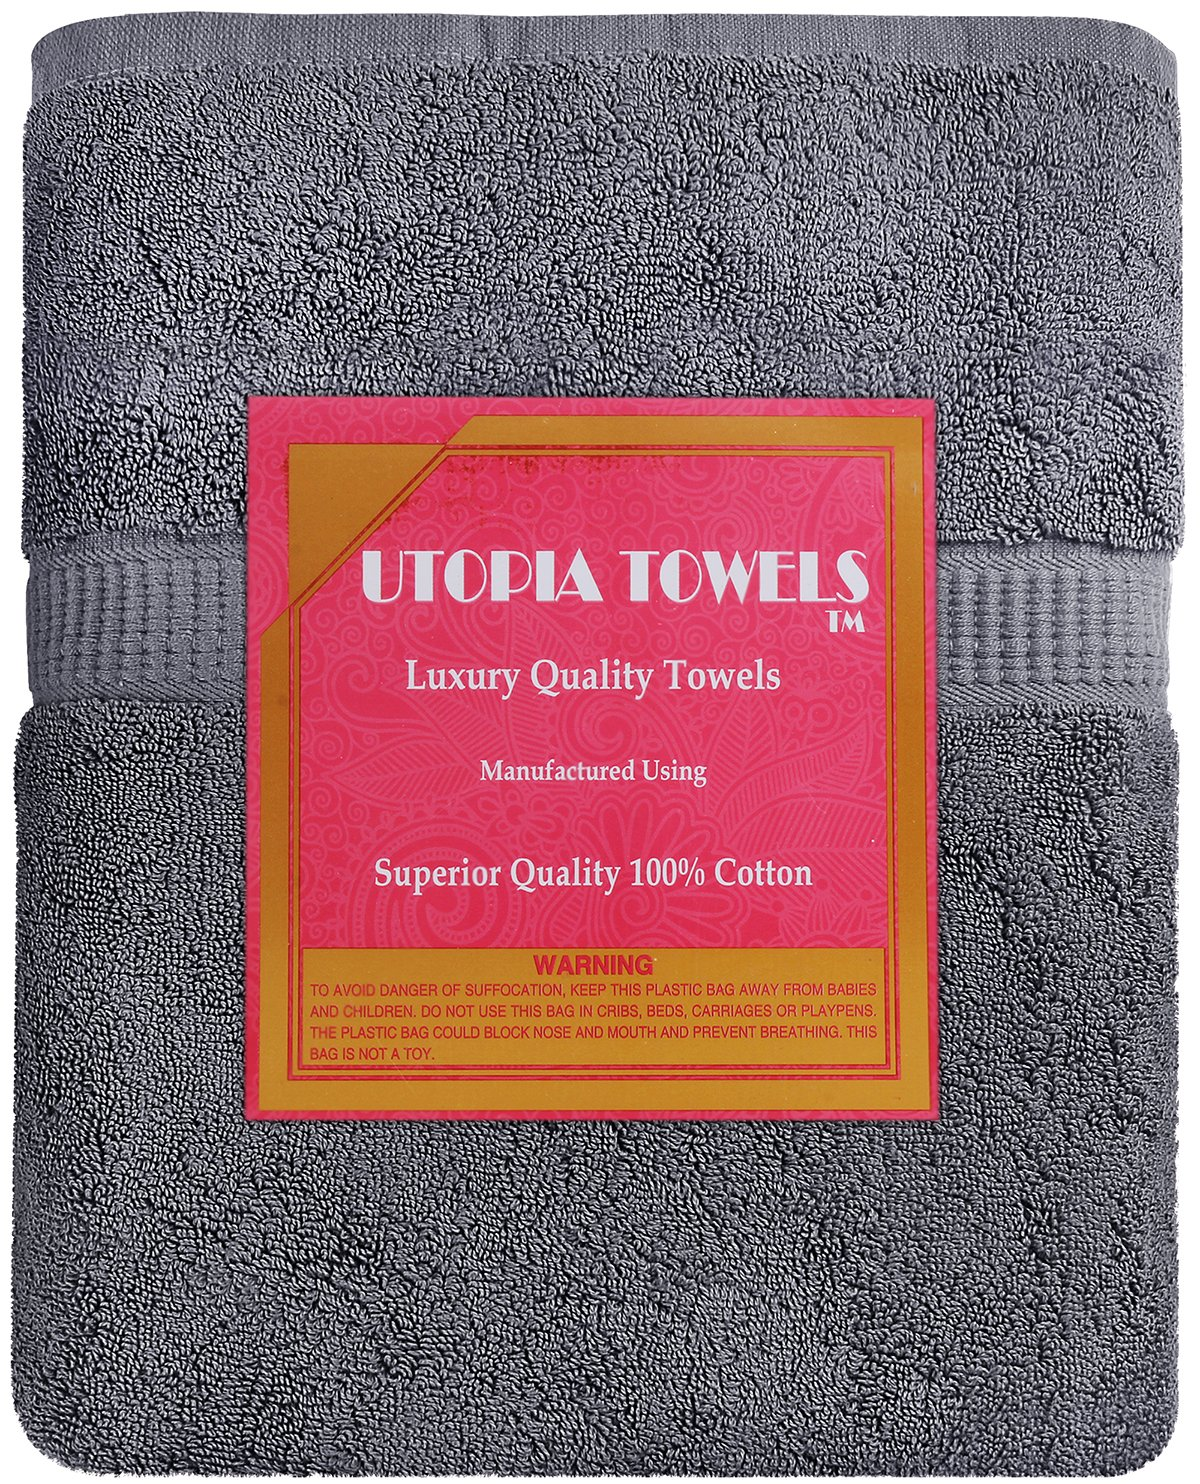 Utopia Towels Soft Cotton Machine Washable Extra Large Bath Towel (35-Inch-by-70-Inch) Luxury Bath Sheet, Gray